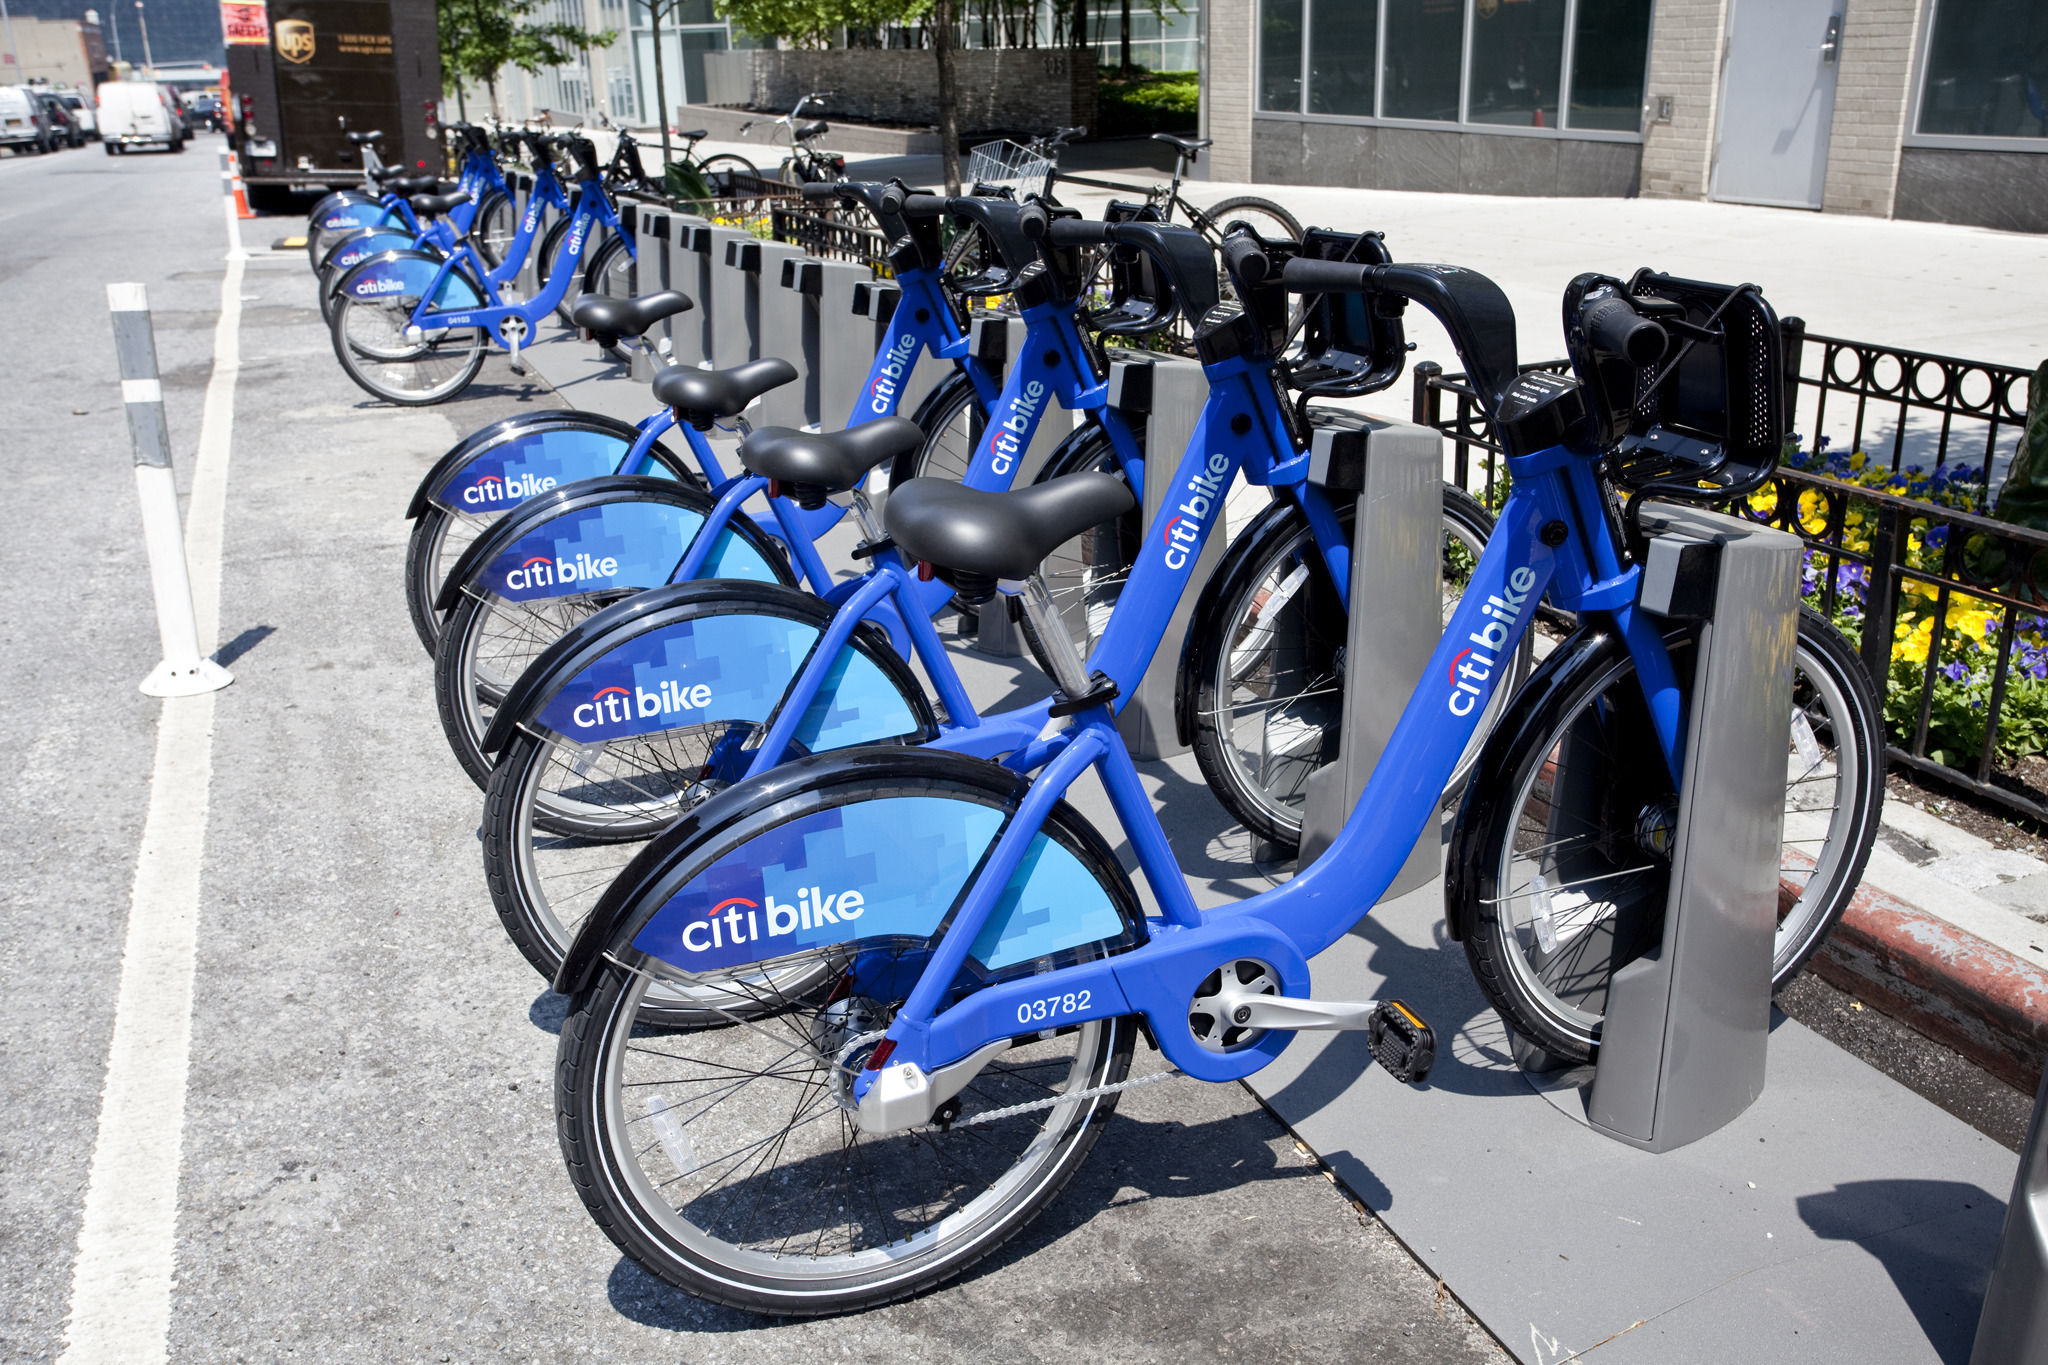 Check out a map of all the Citi Bike stations in NYC